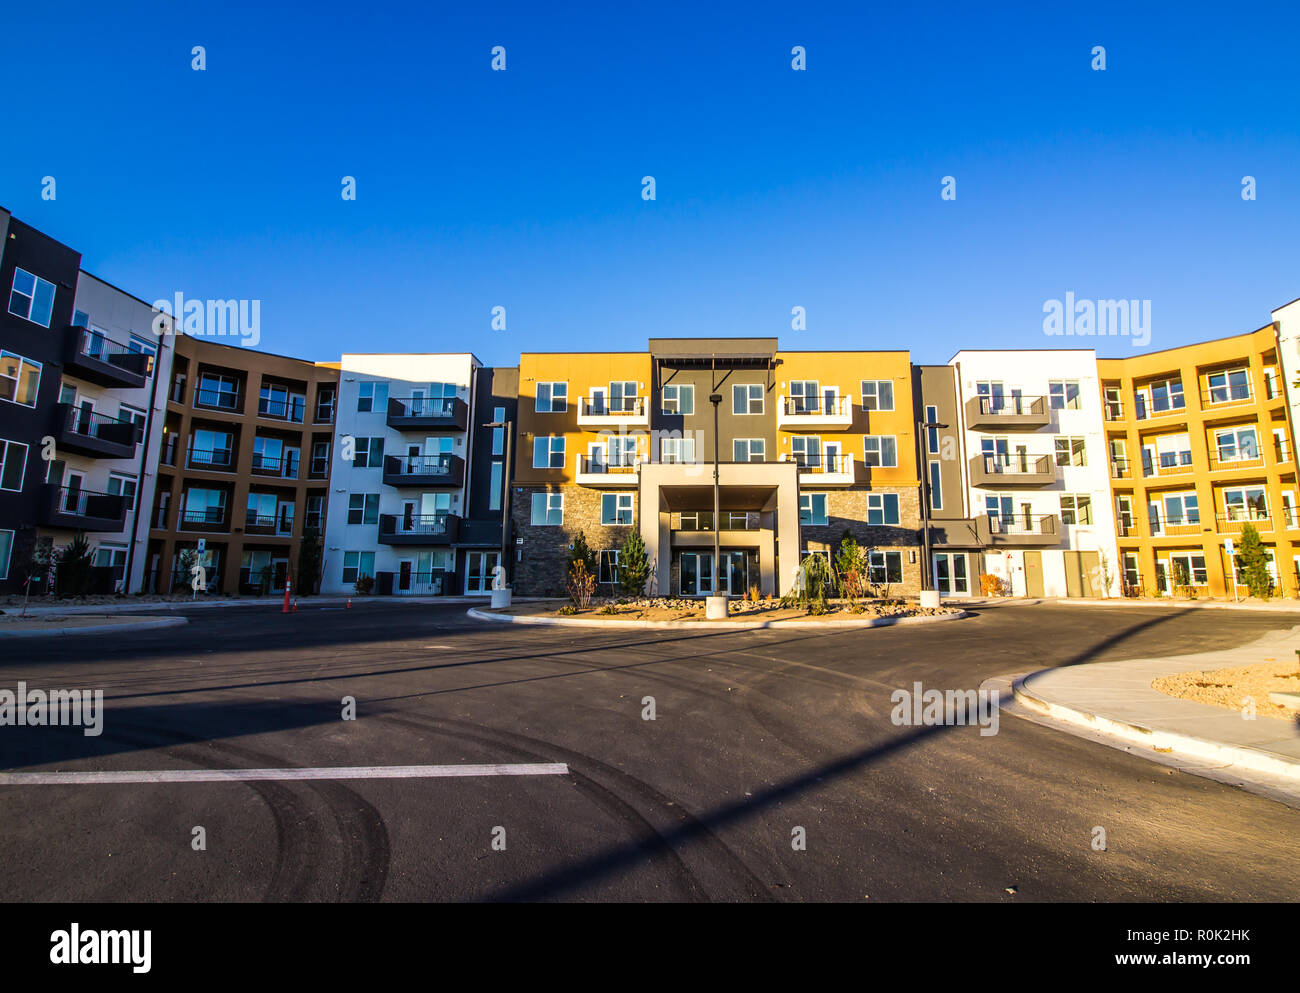 New Multi Story Senior Apartment Building Nearing Completion - Stock Image